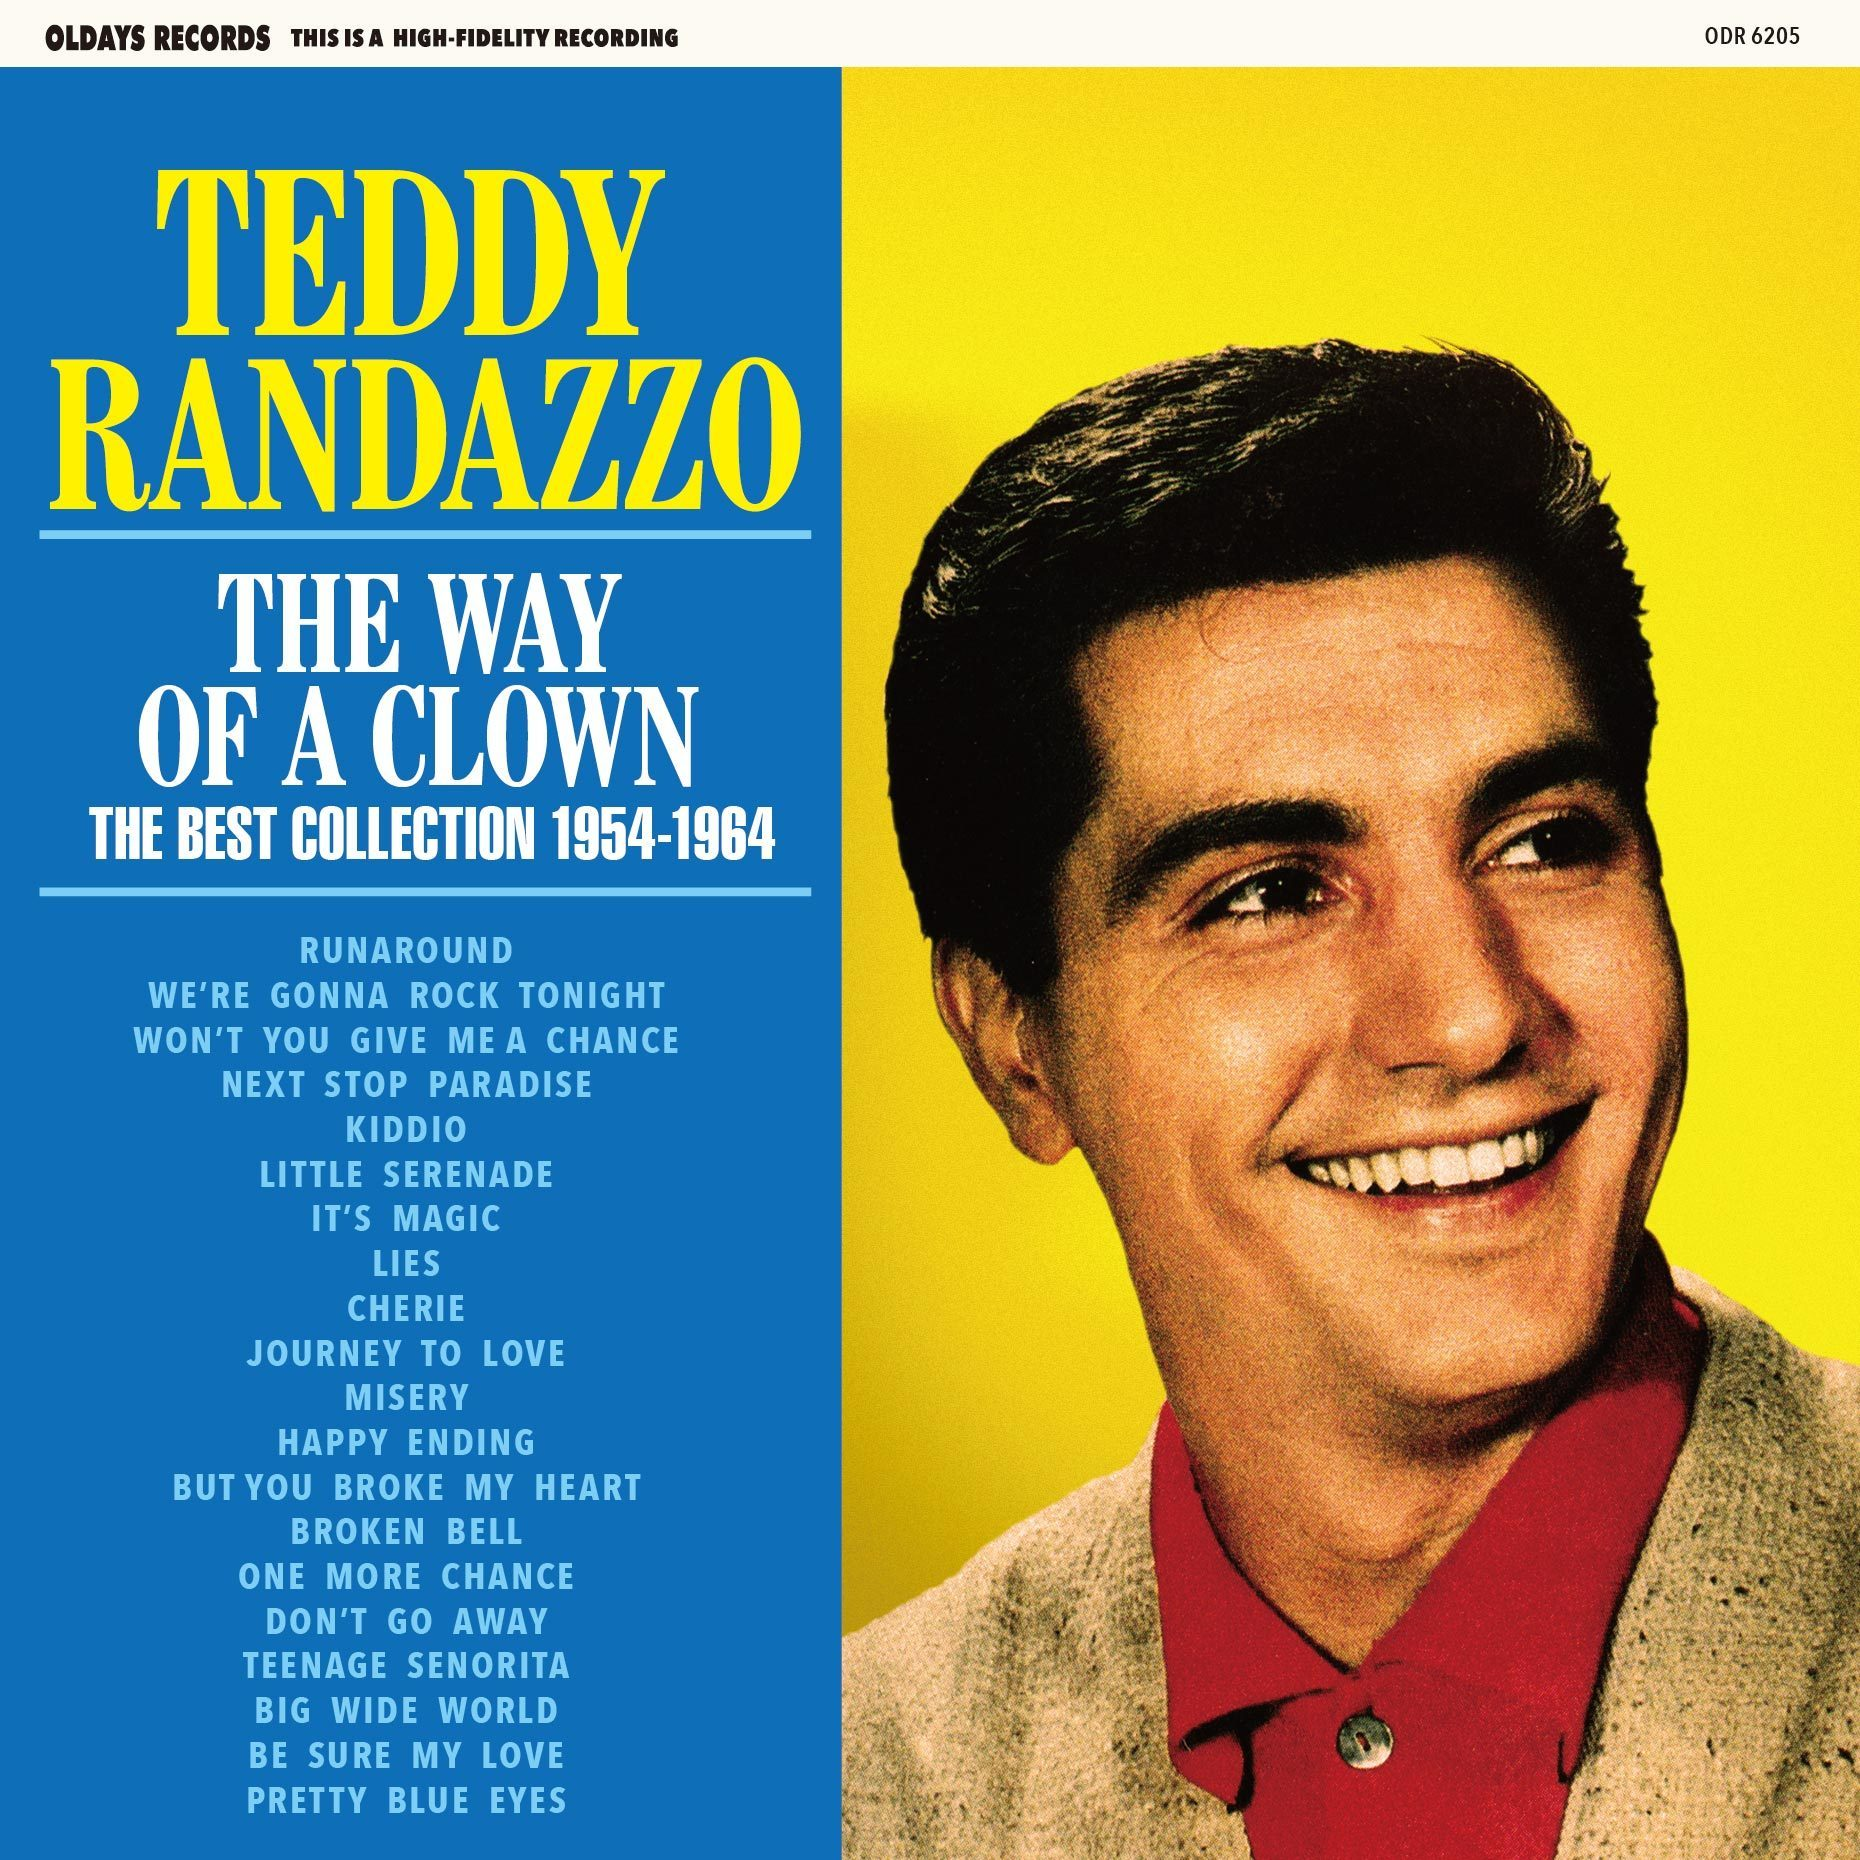 The Way of A Clown - Teddy Randazzo